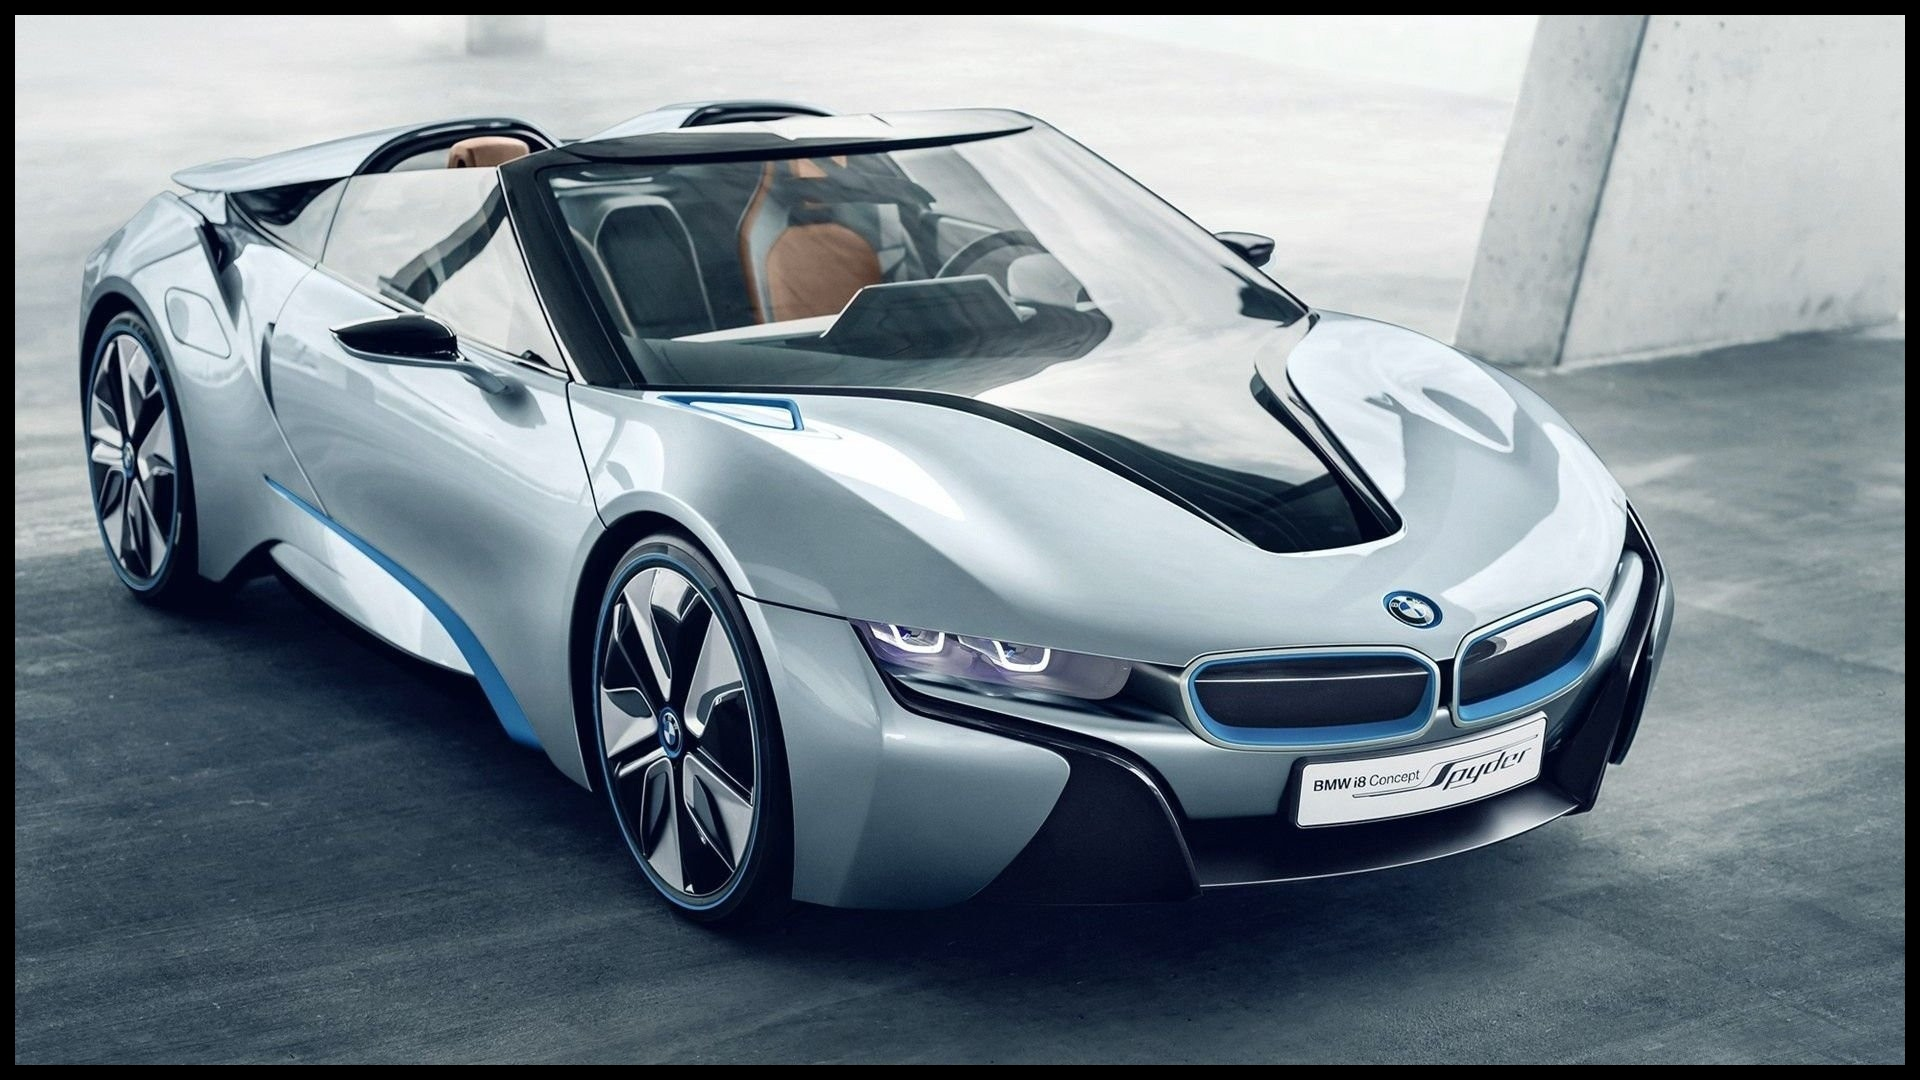 Bmw I8 Wallpaper Fresh Bmw I8 Wiki Inspirational File 3 0d X5 Grill Awesome Bmw I8 Wallpaper Download